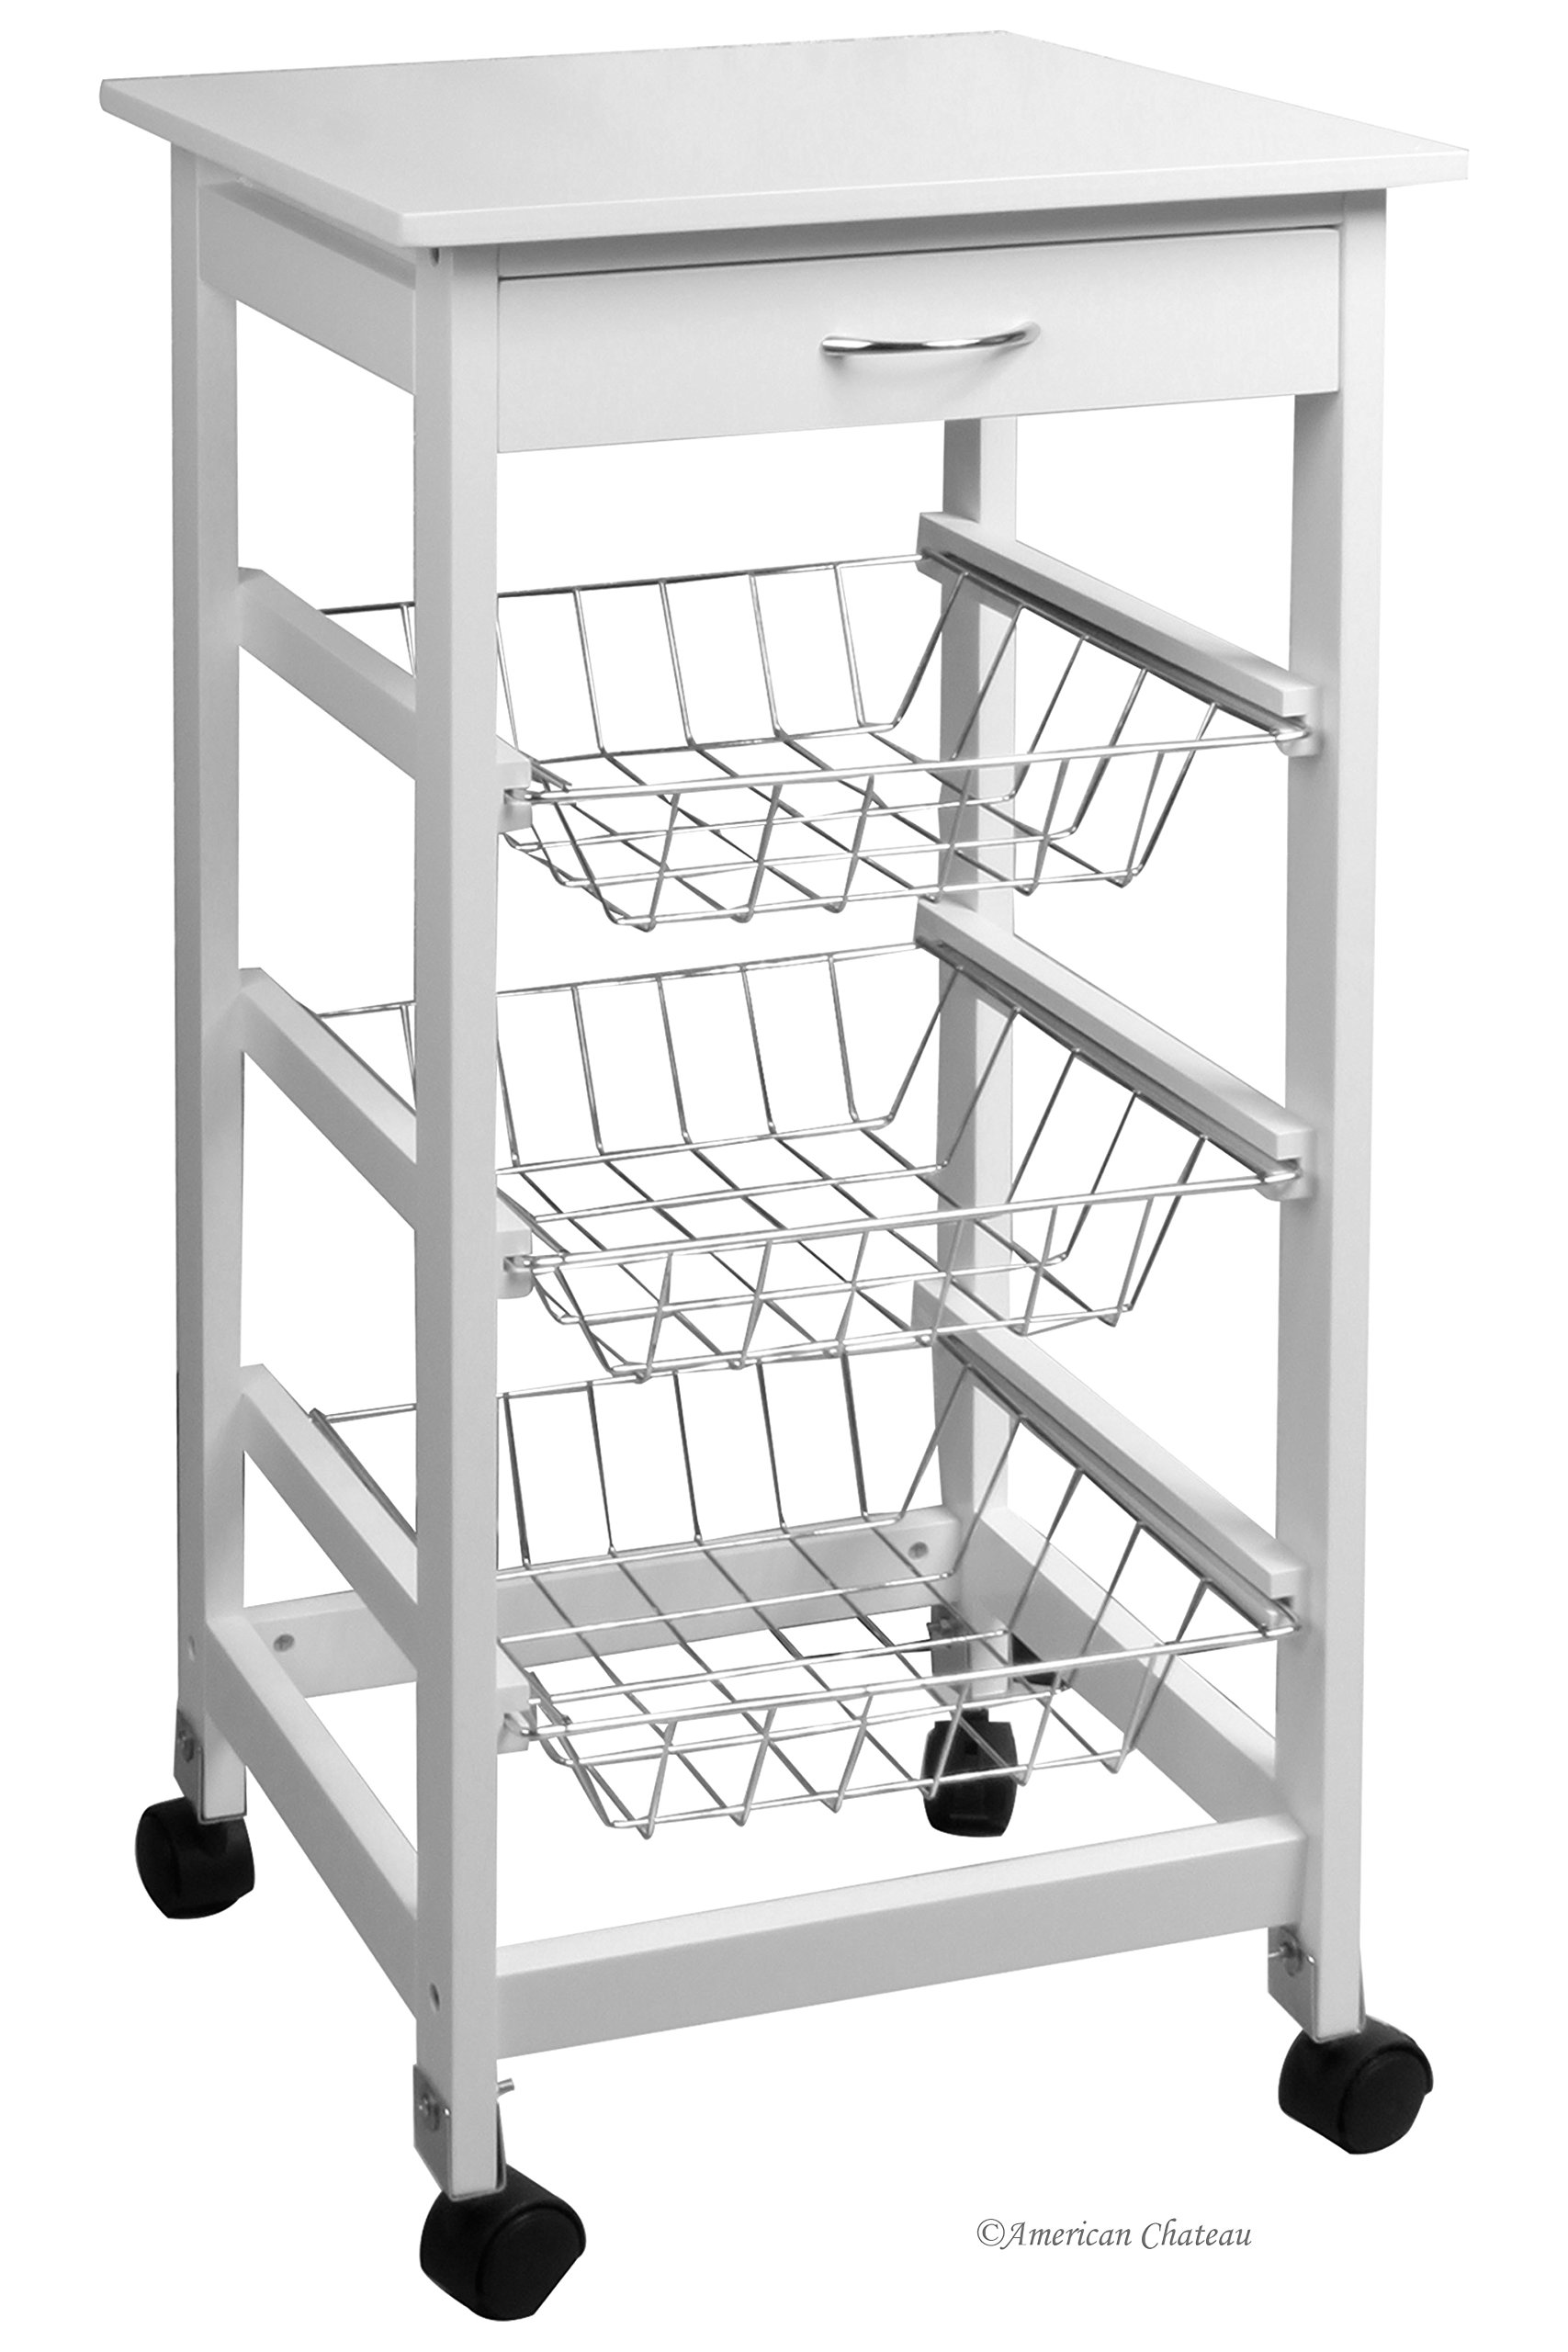 American Chateau White Wood 3-Basket Shelving Unit Trolley Cabinet Kitchen Island with Caster Wheels